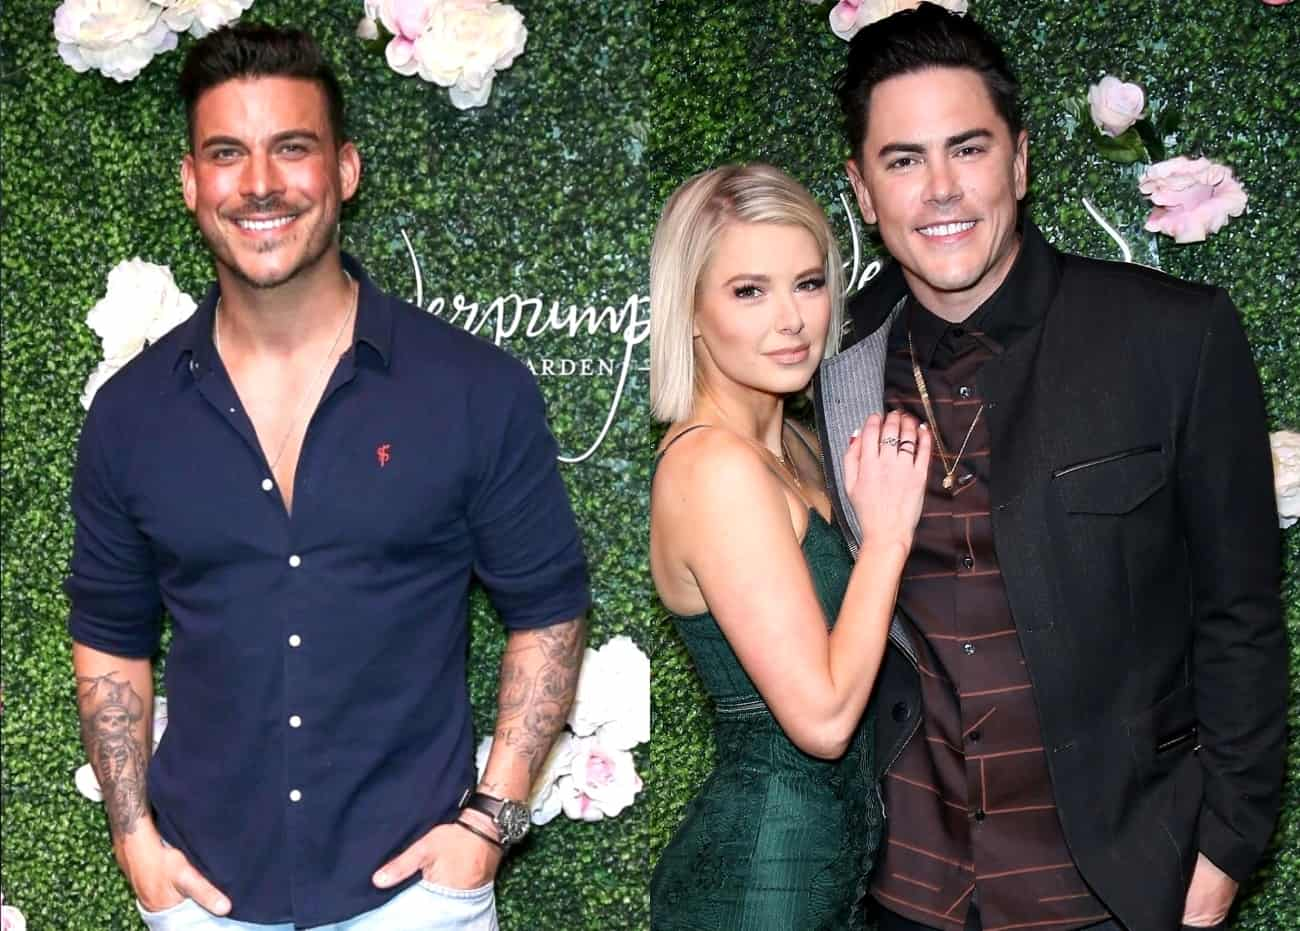 Vanderpump Rules' Jax Taylor Finally Reveals the Real Reason He Unfollowed and Blocked Tom Sandoval